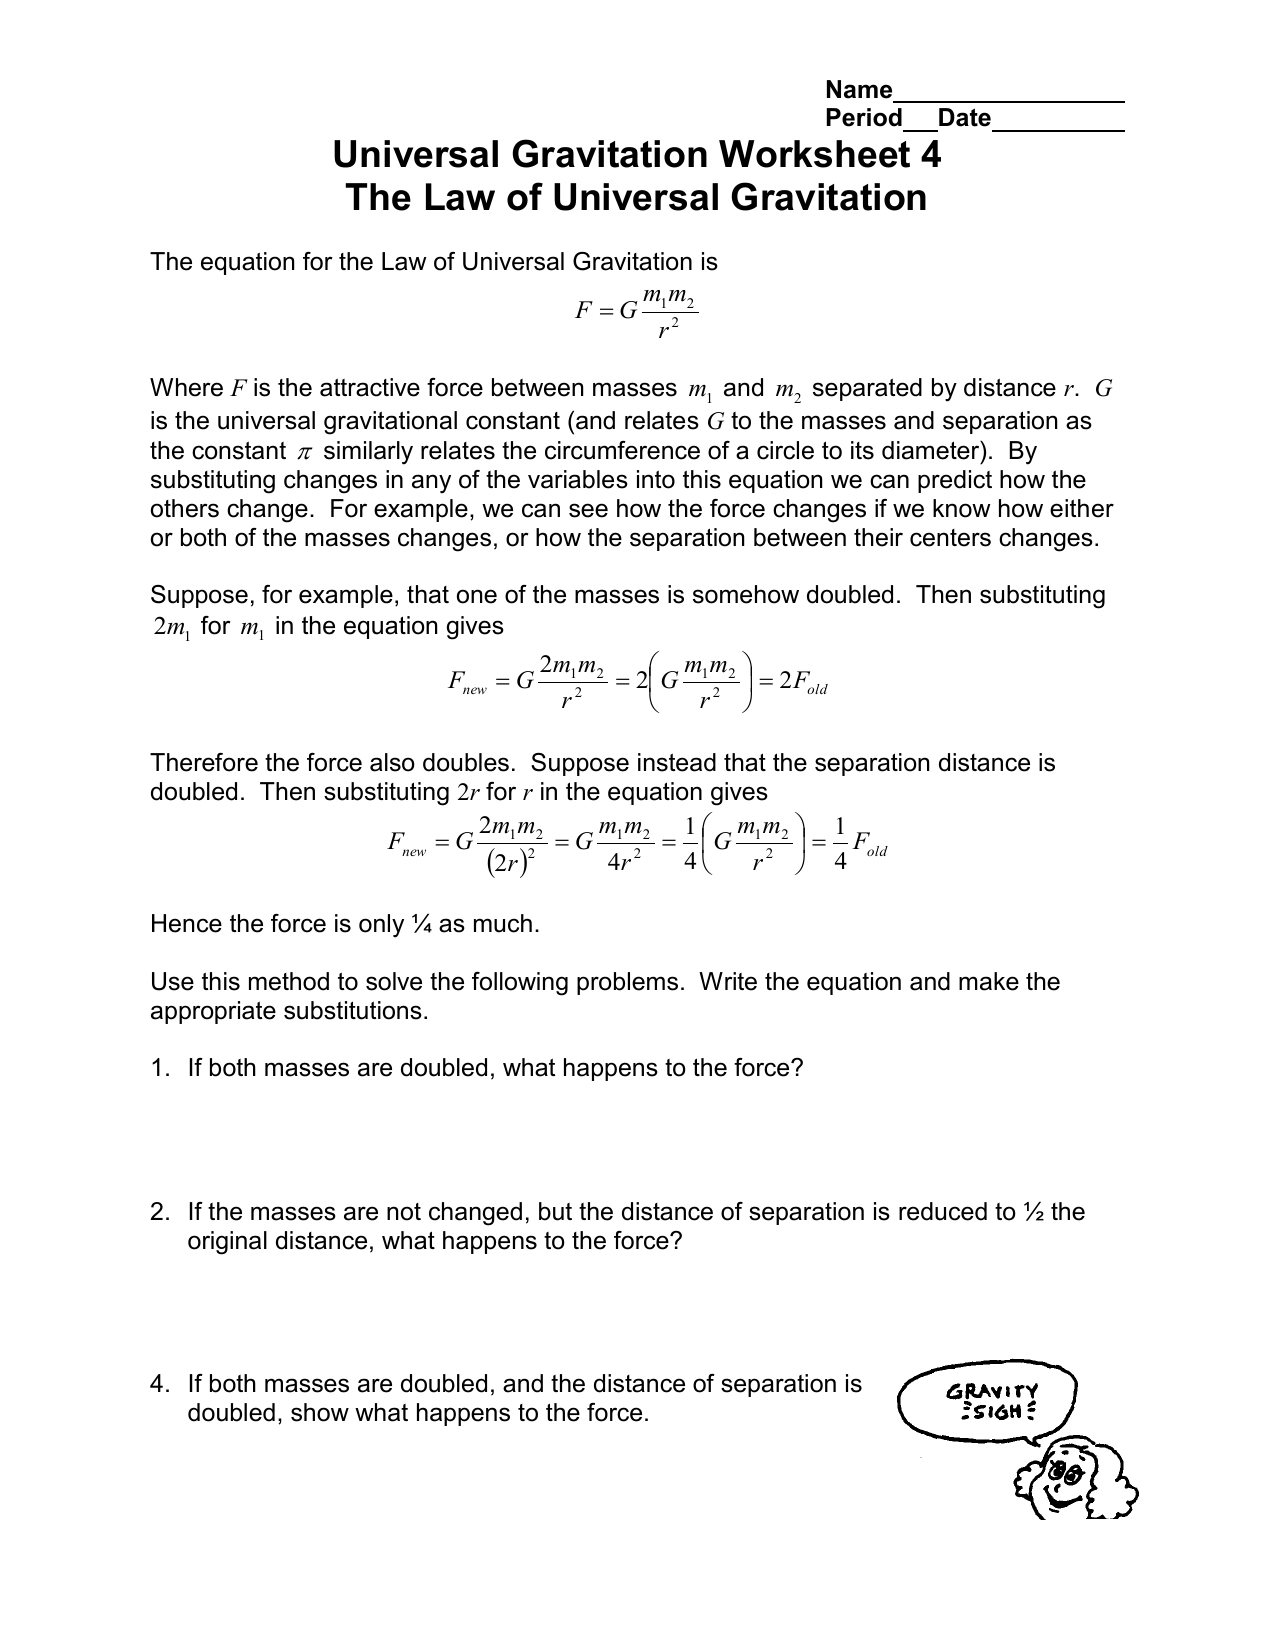 Universal Gravitation Worksheet 4 The Law Of Universal